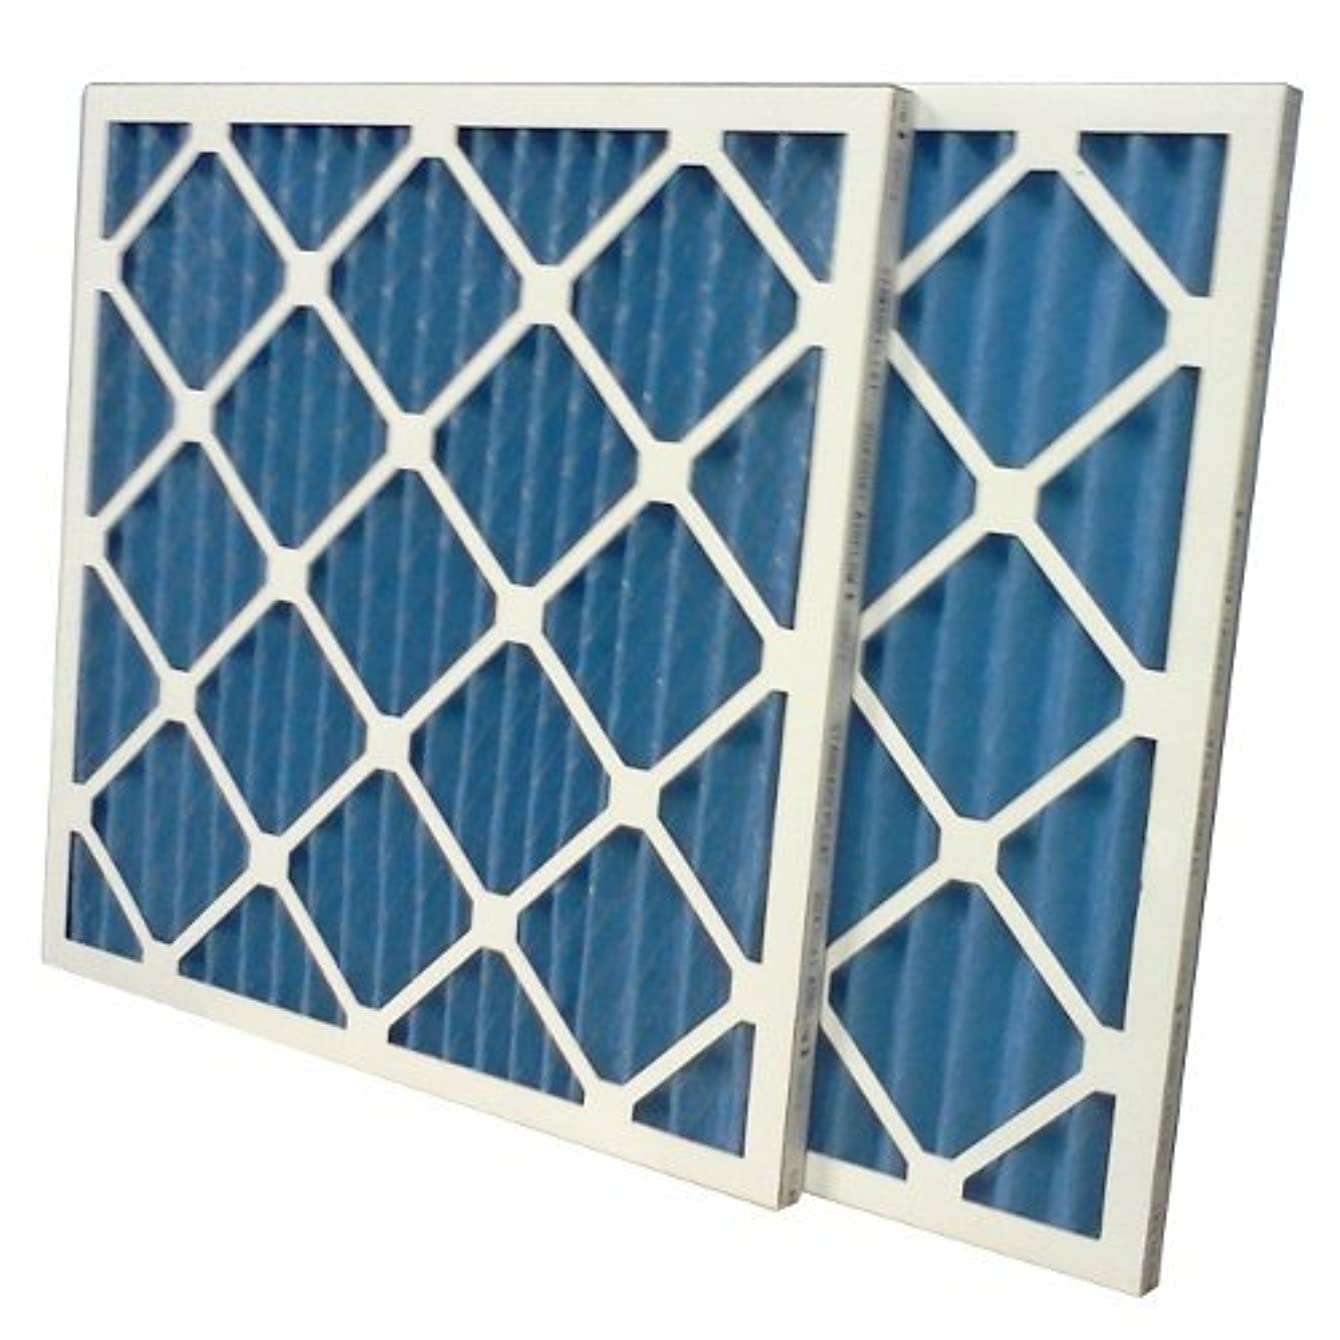 US Home Filter SC40-16X20X1 MERV 8 Pleated Air Filter (12 Pack), 16